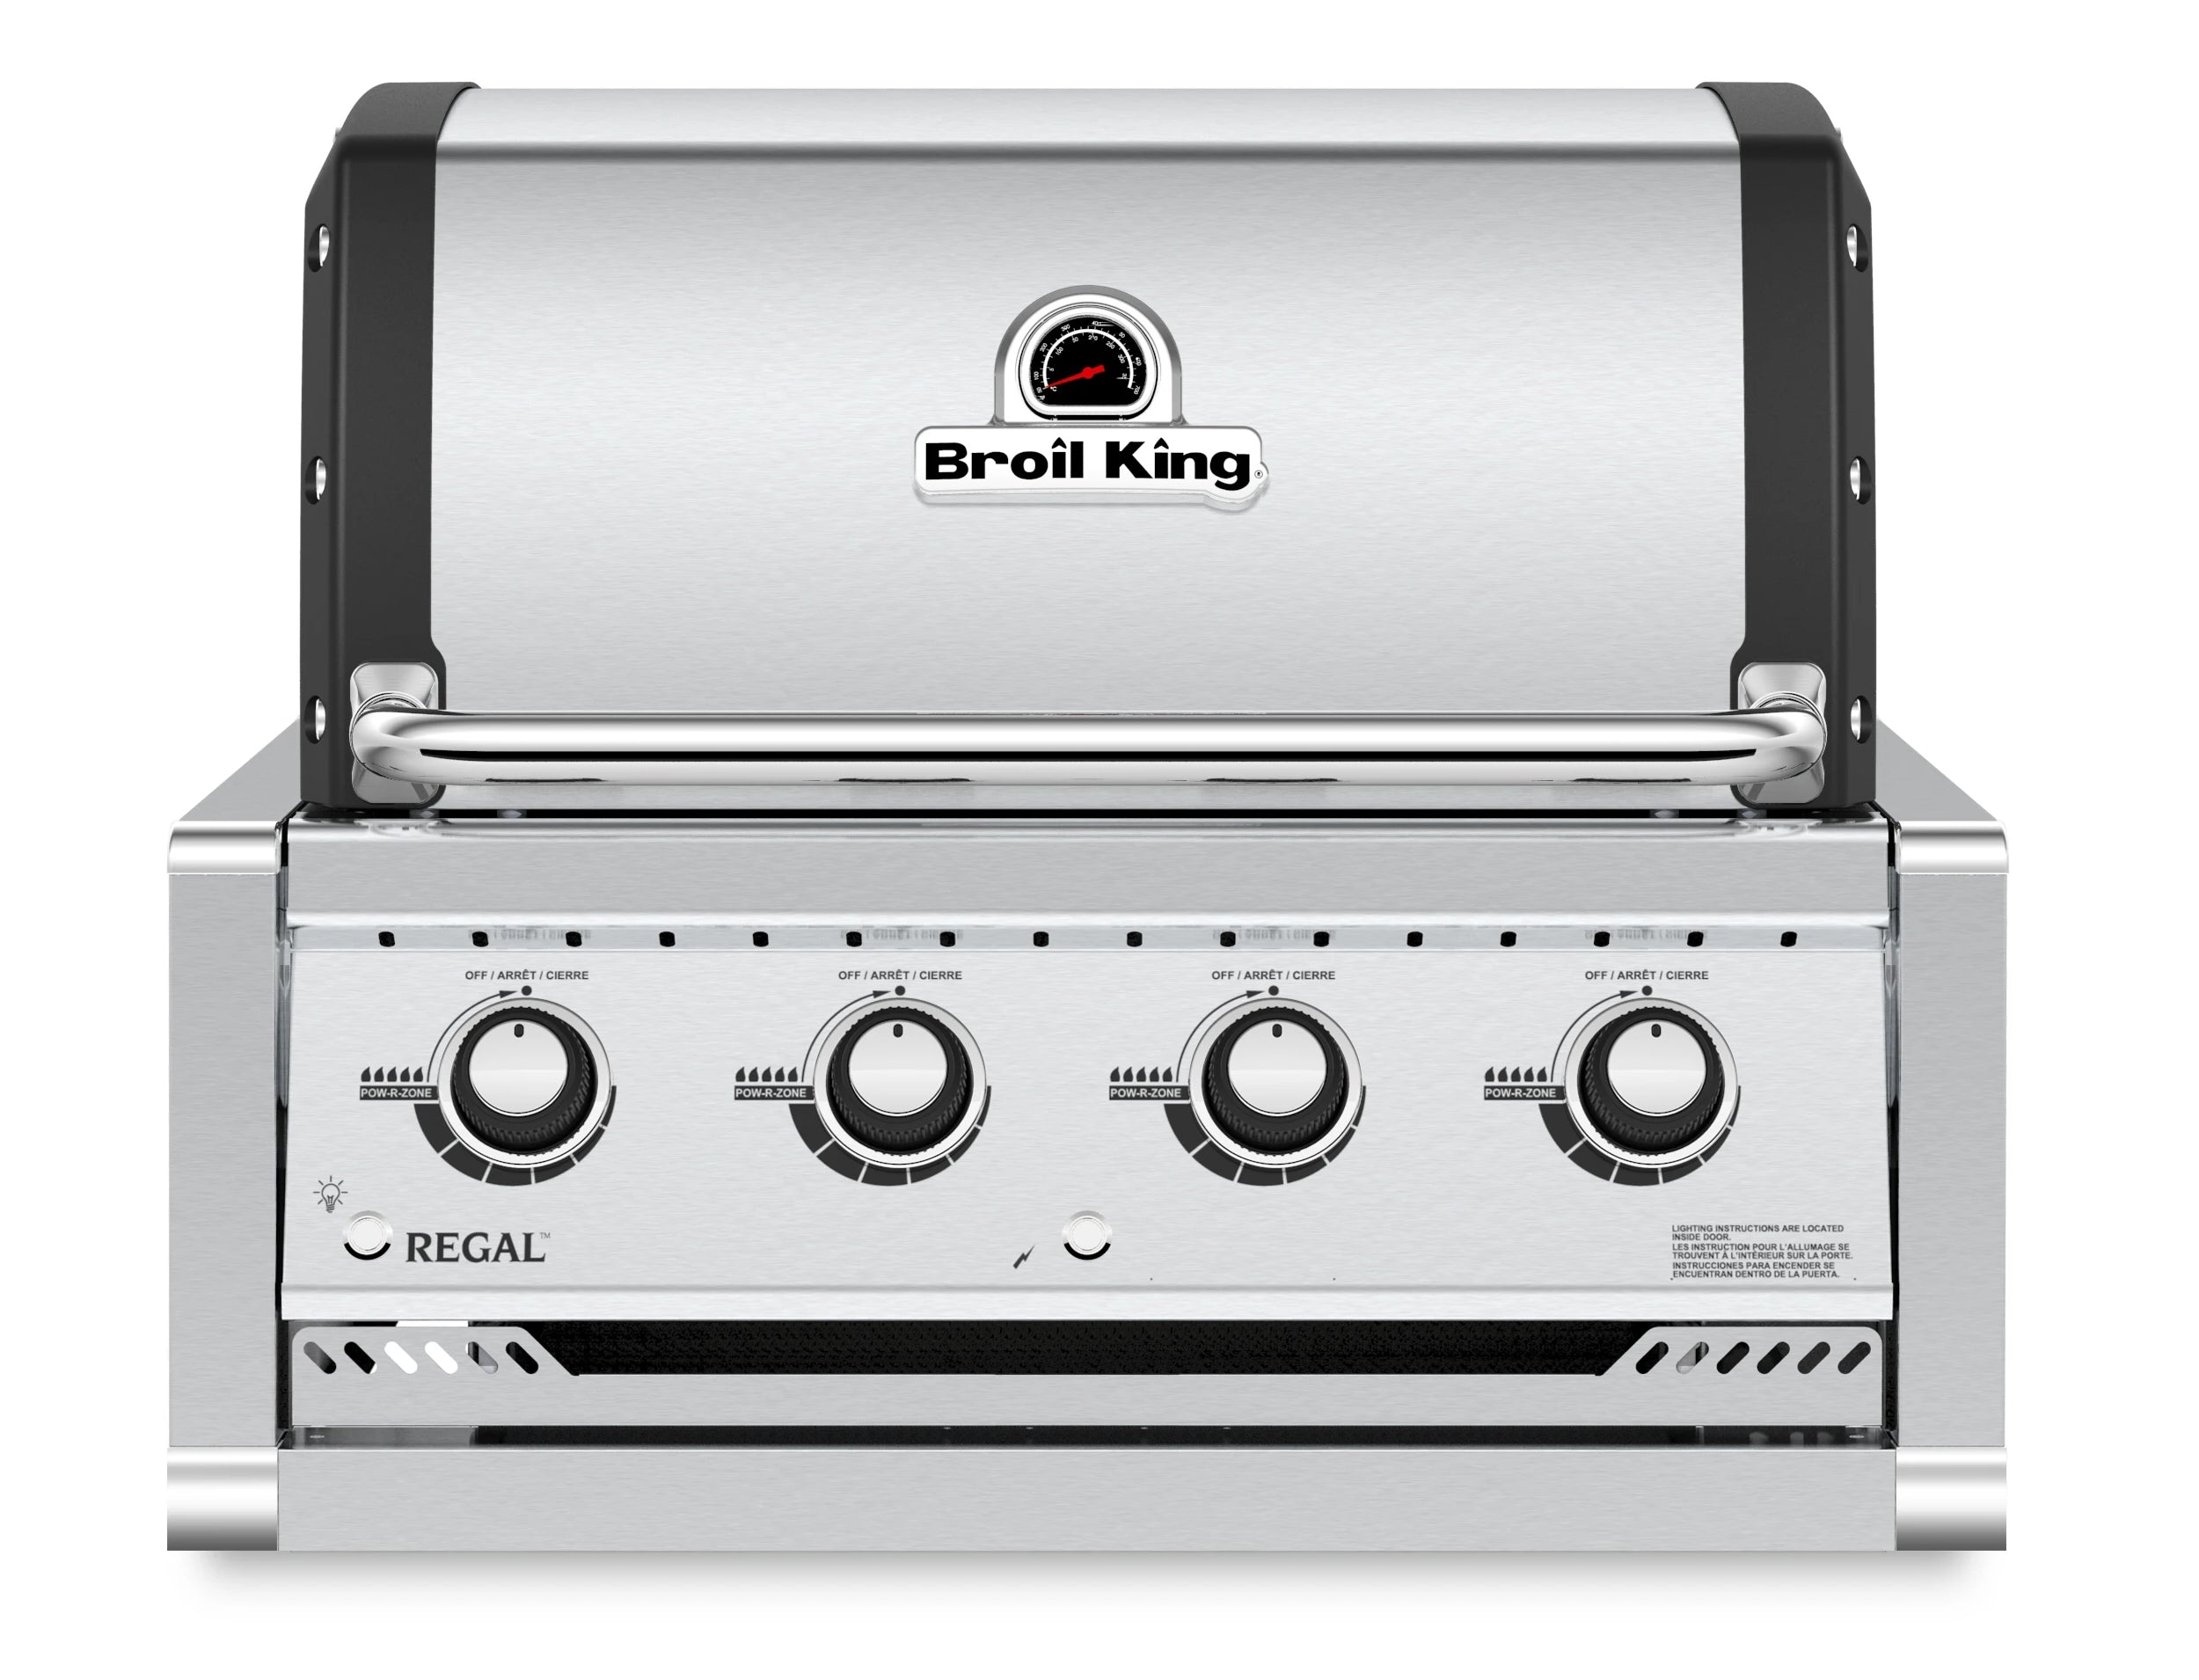 Broil King Regal S420